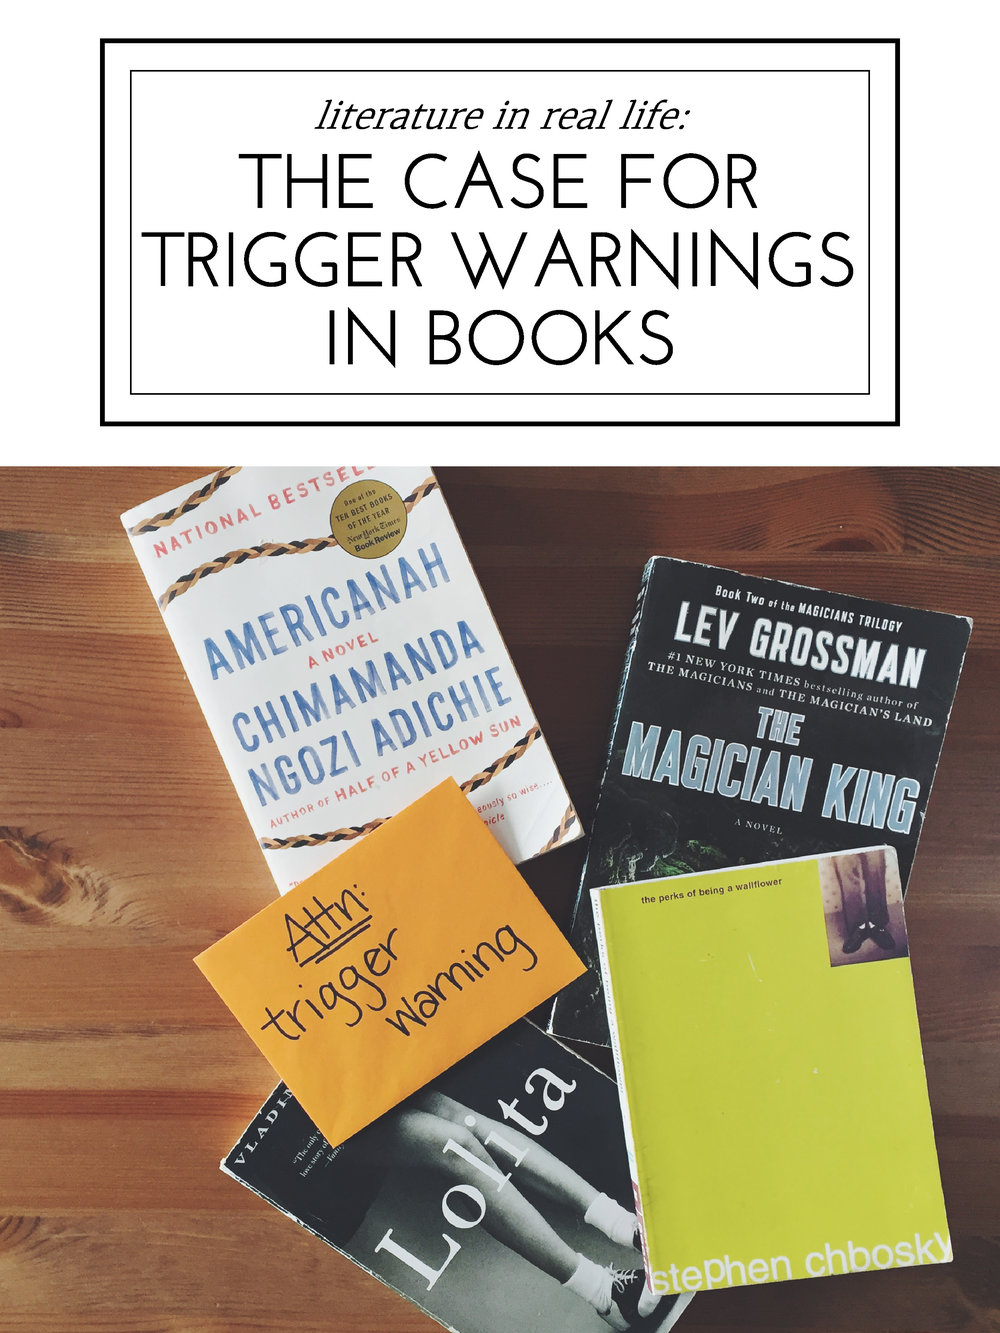 Blessed Bookworm's Literature in Real Life: The Case for Trigger Warnings in Books